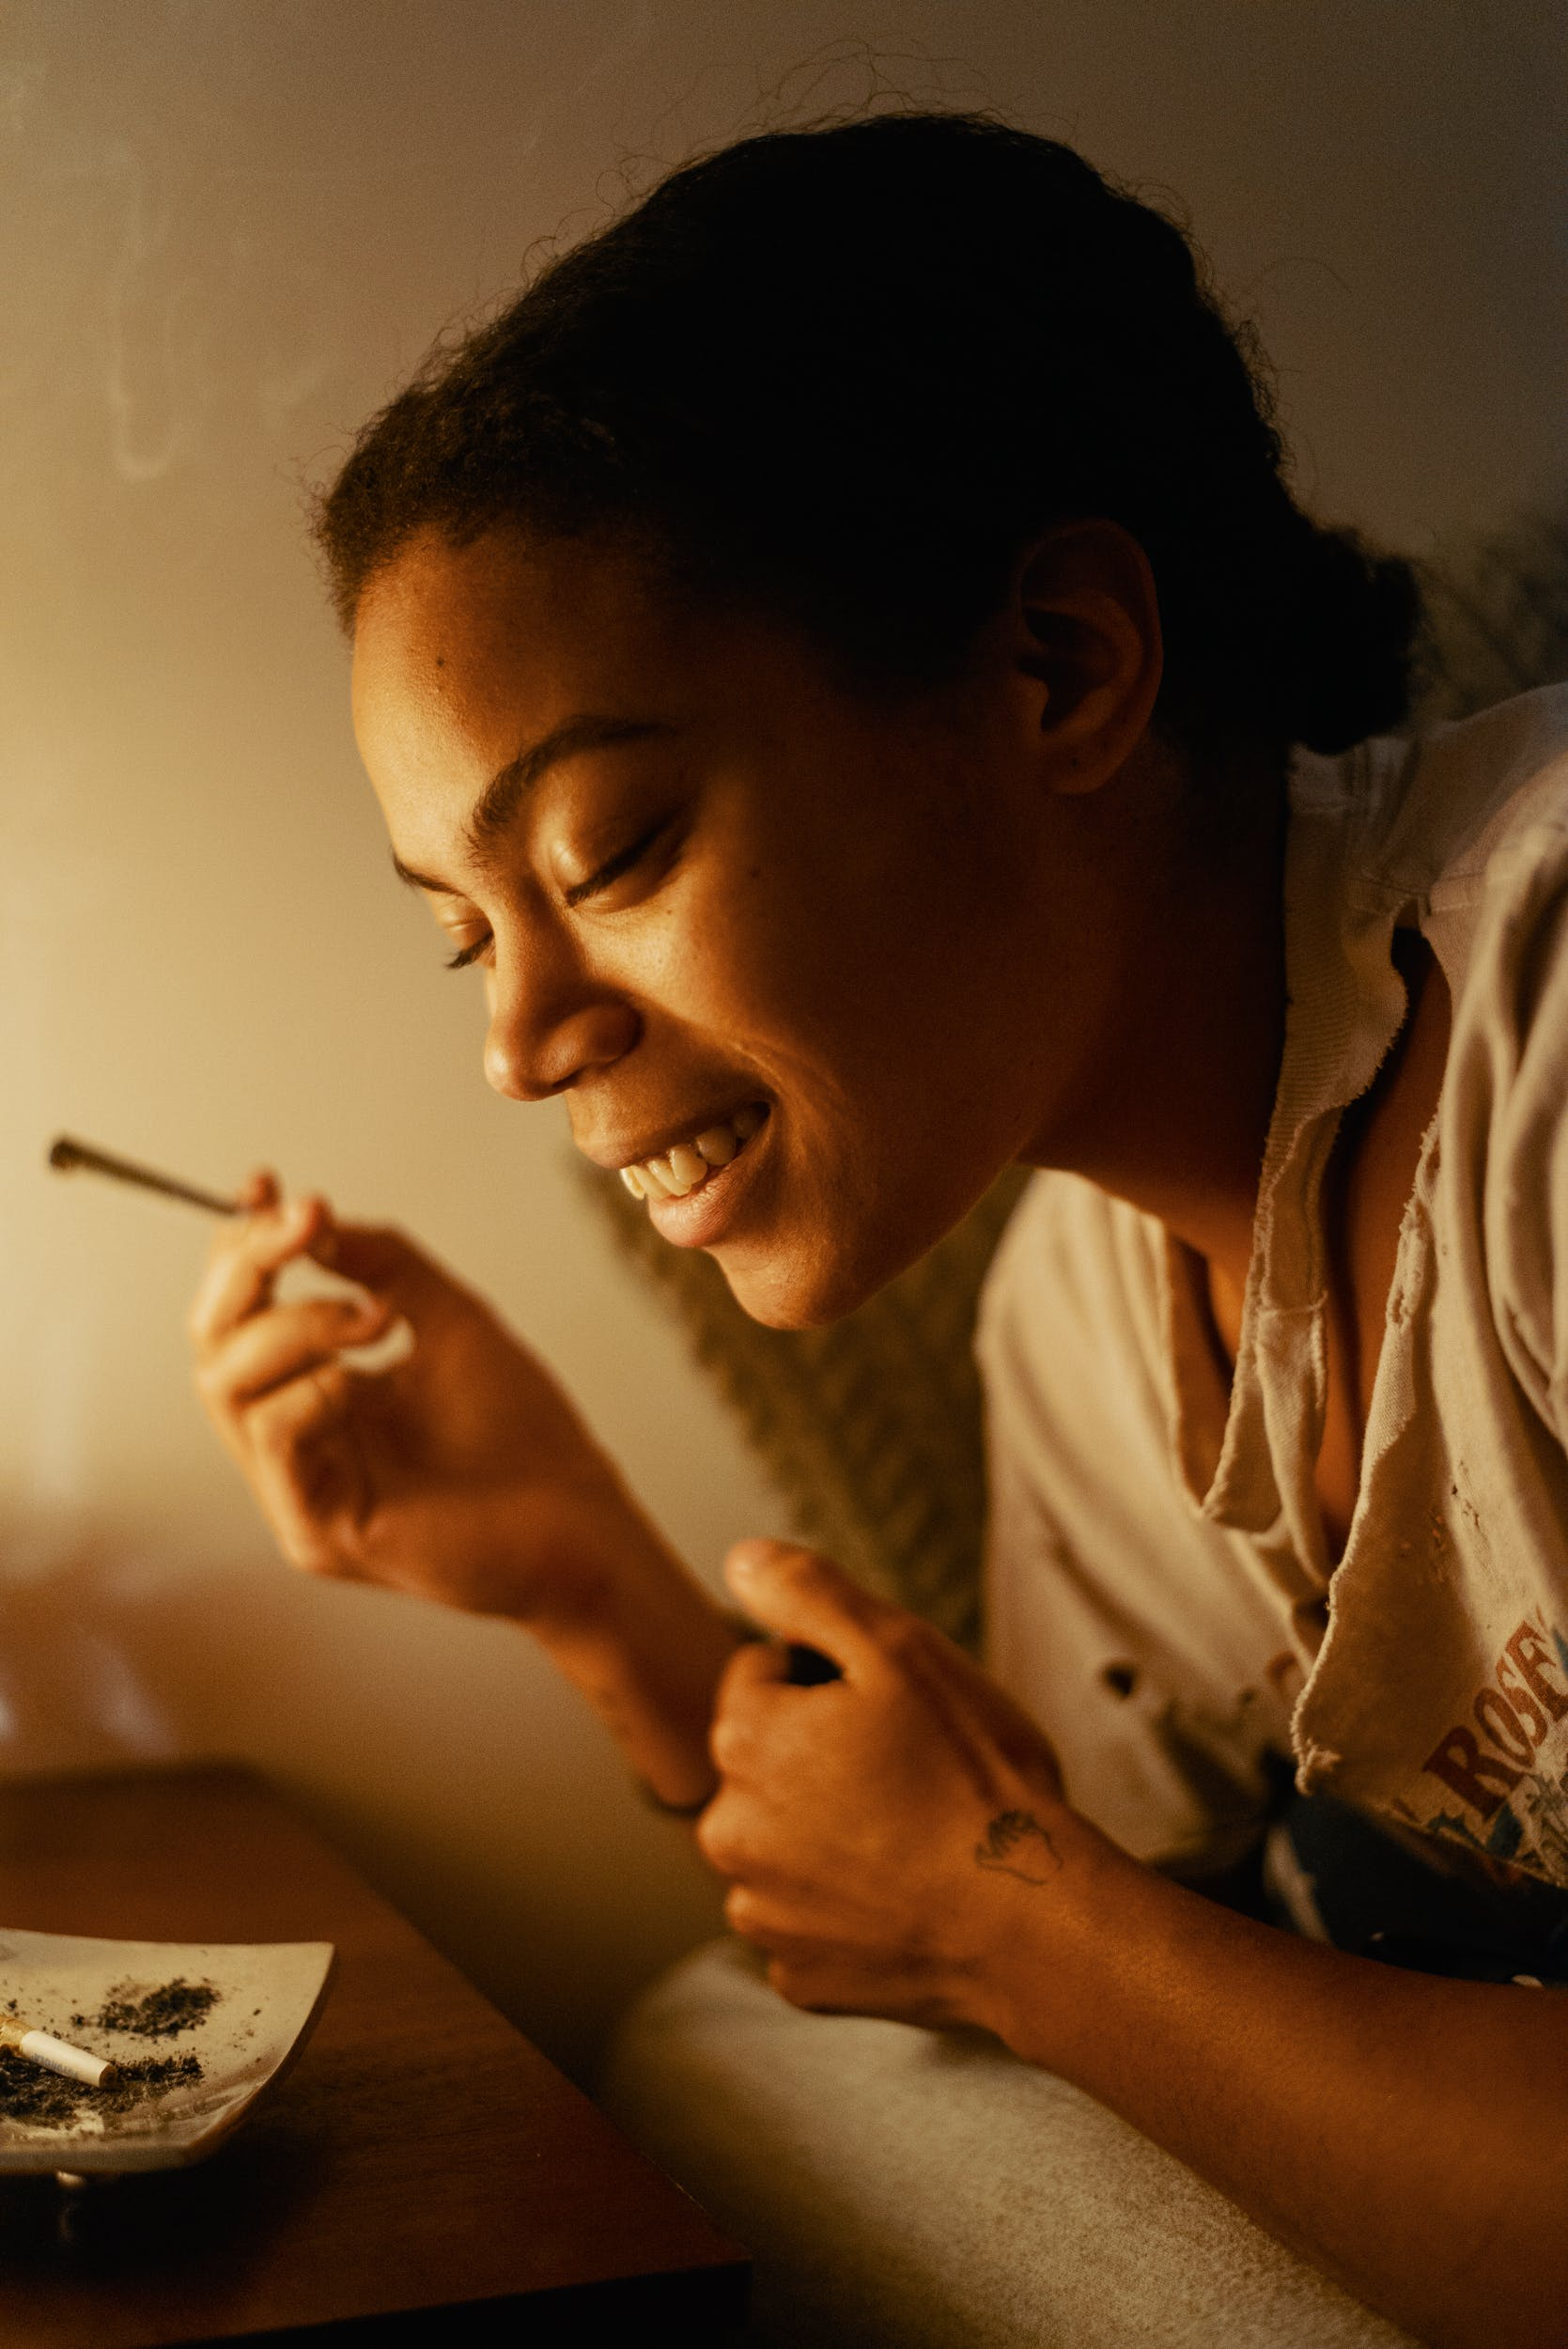 Best CBD Strains 6 Here Are The Best CBD Strains For a Chilled Out Session